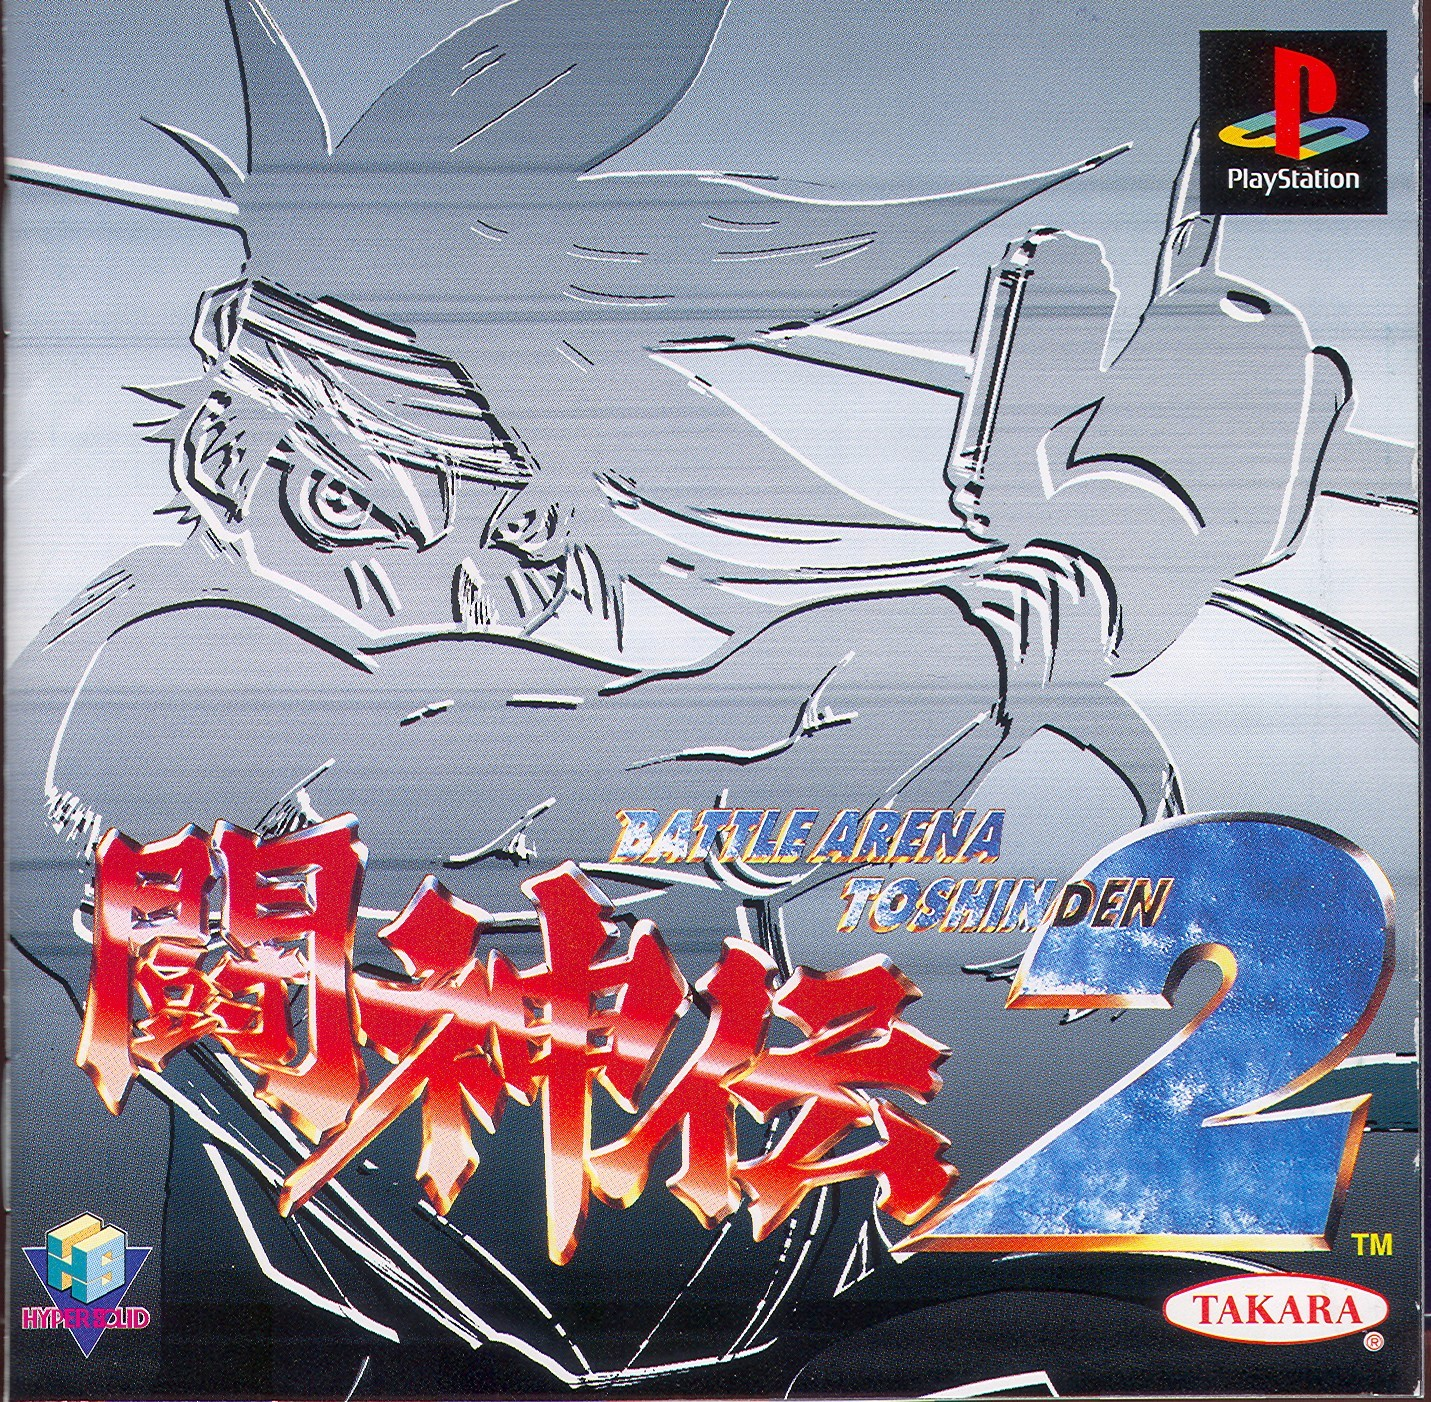 Battle Arena Toshinden 2 Ntsc J Front